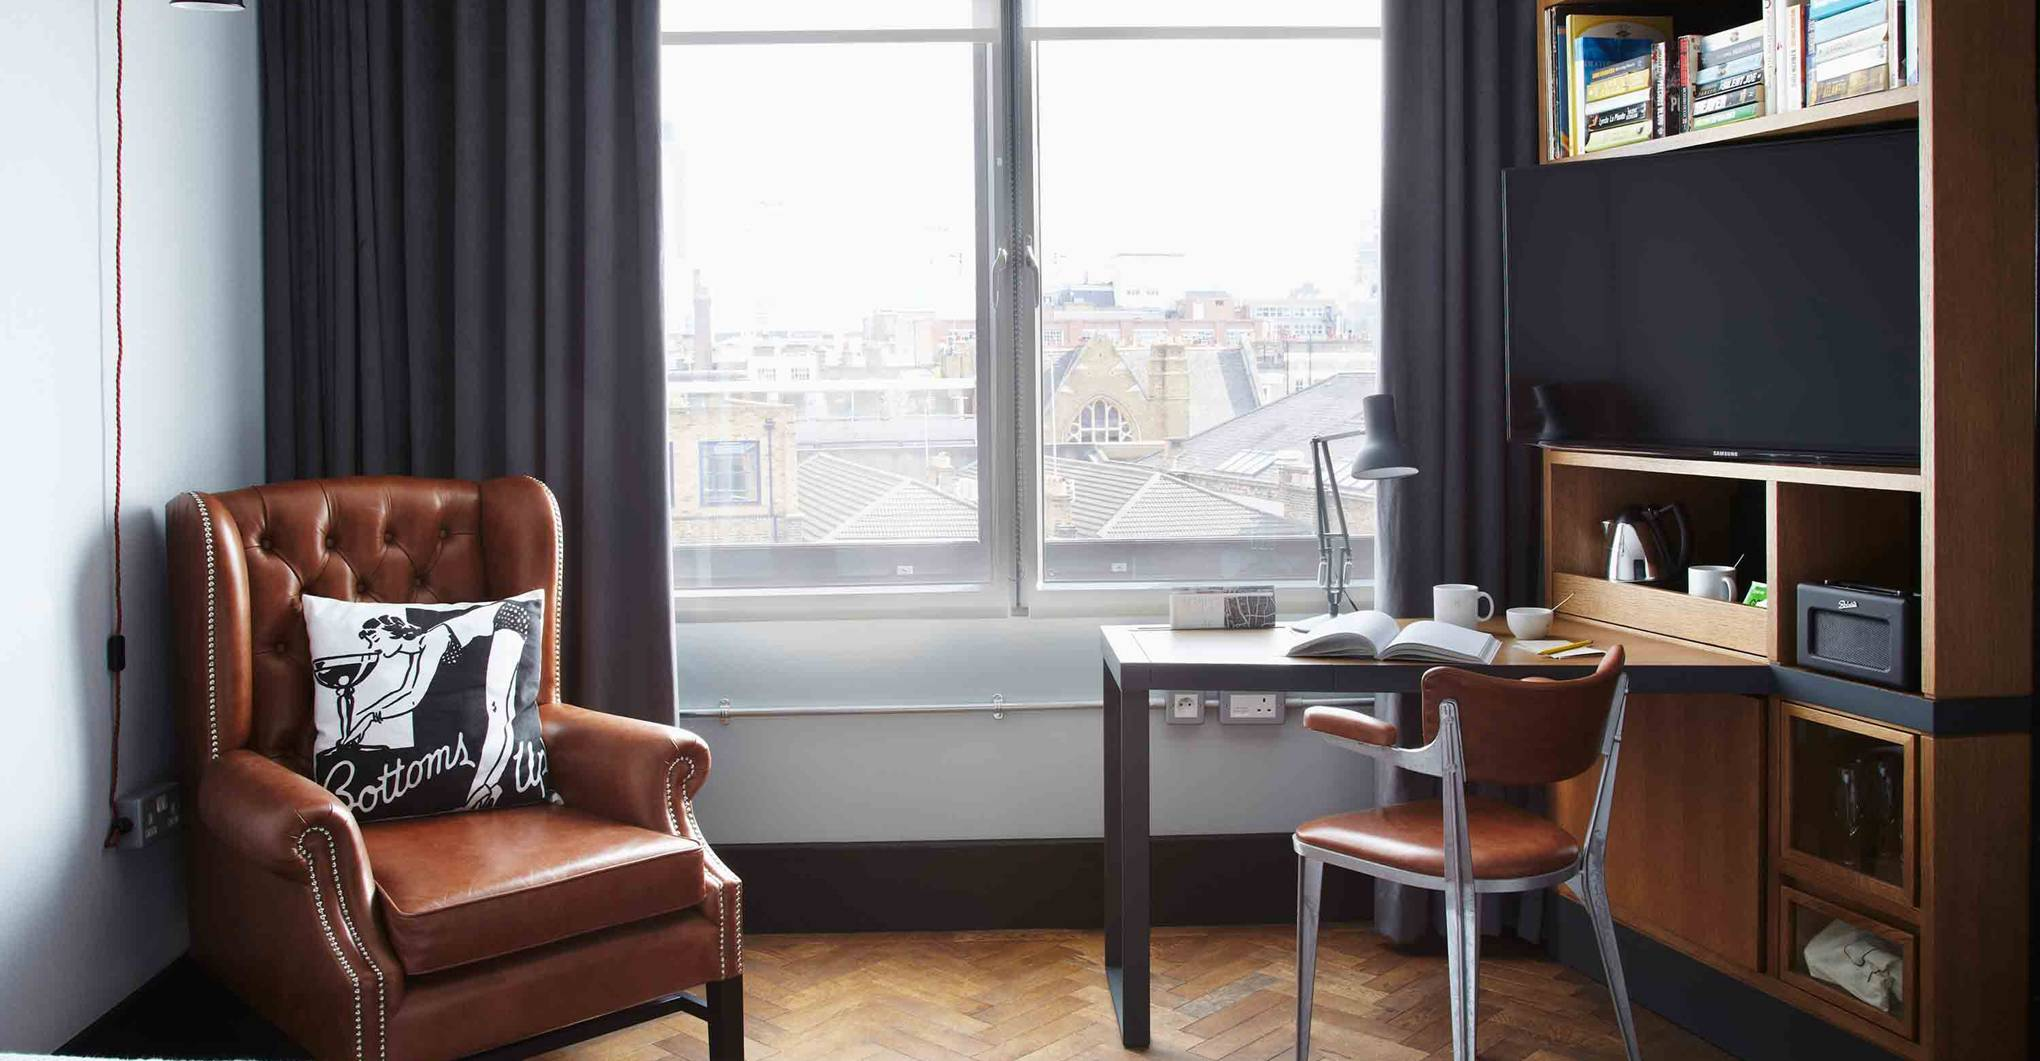 Hoxton Shoreditch hotel review